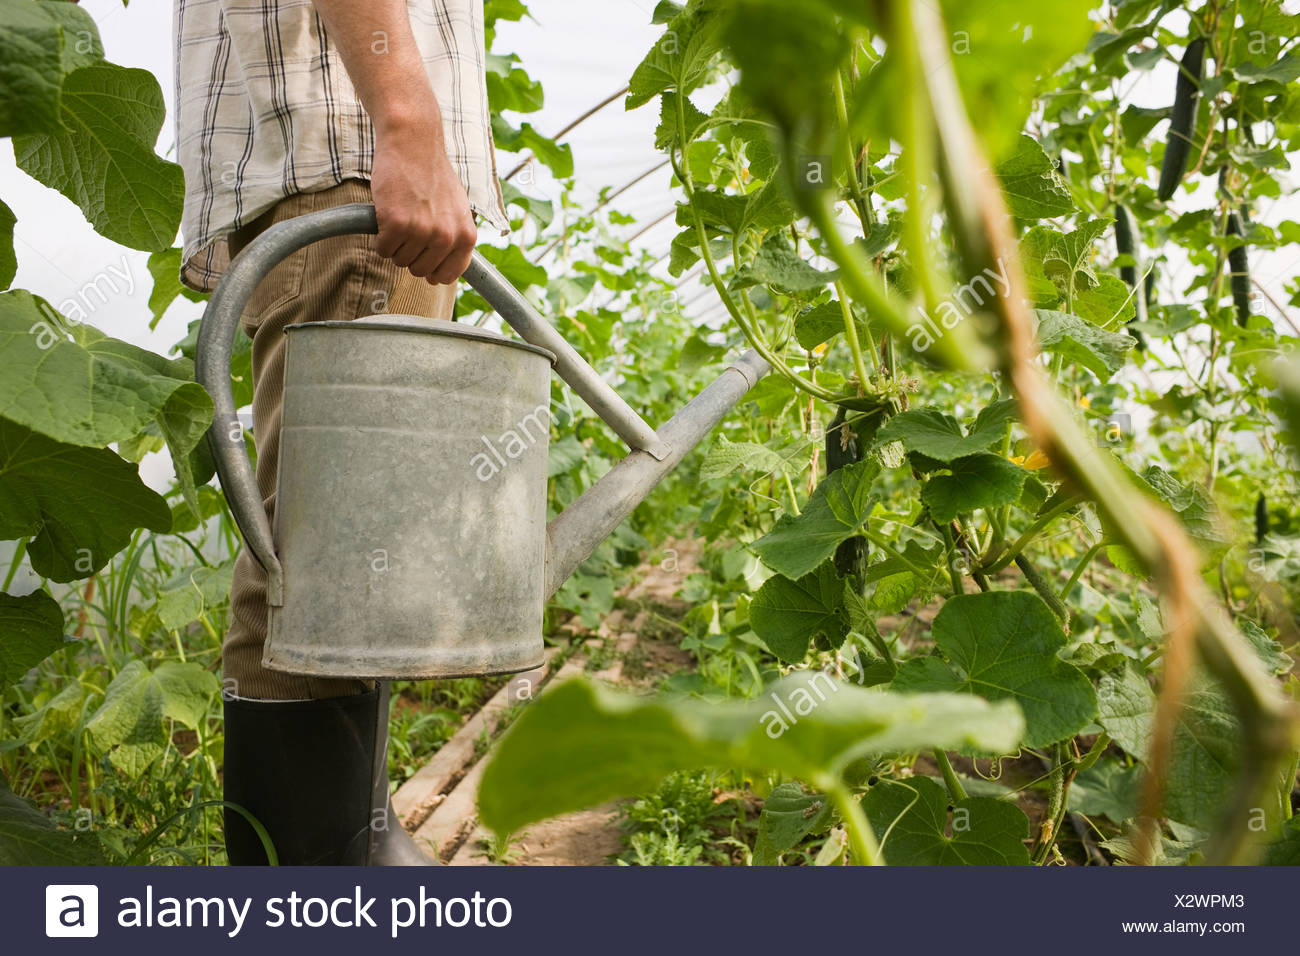 Person in greenhouse holding watering can, side view Stock Photo